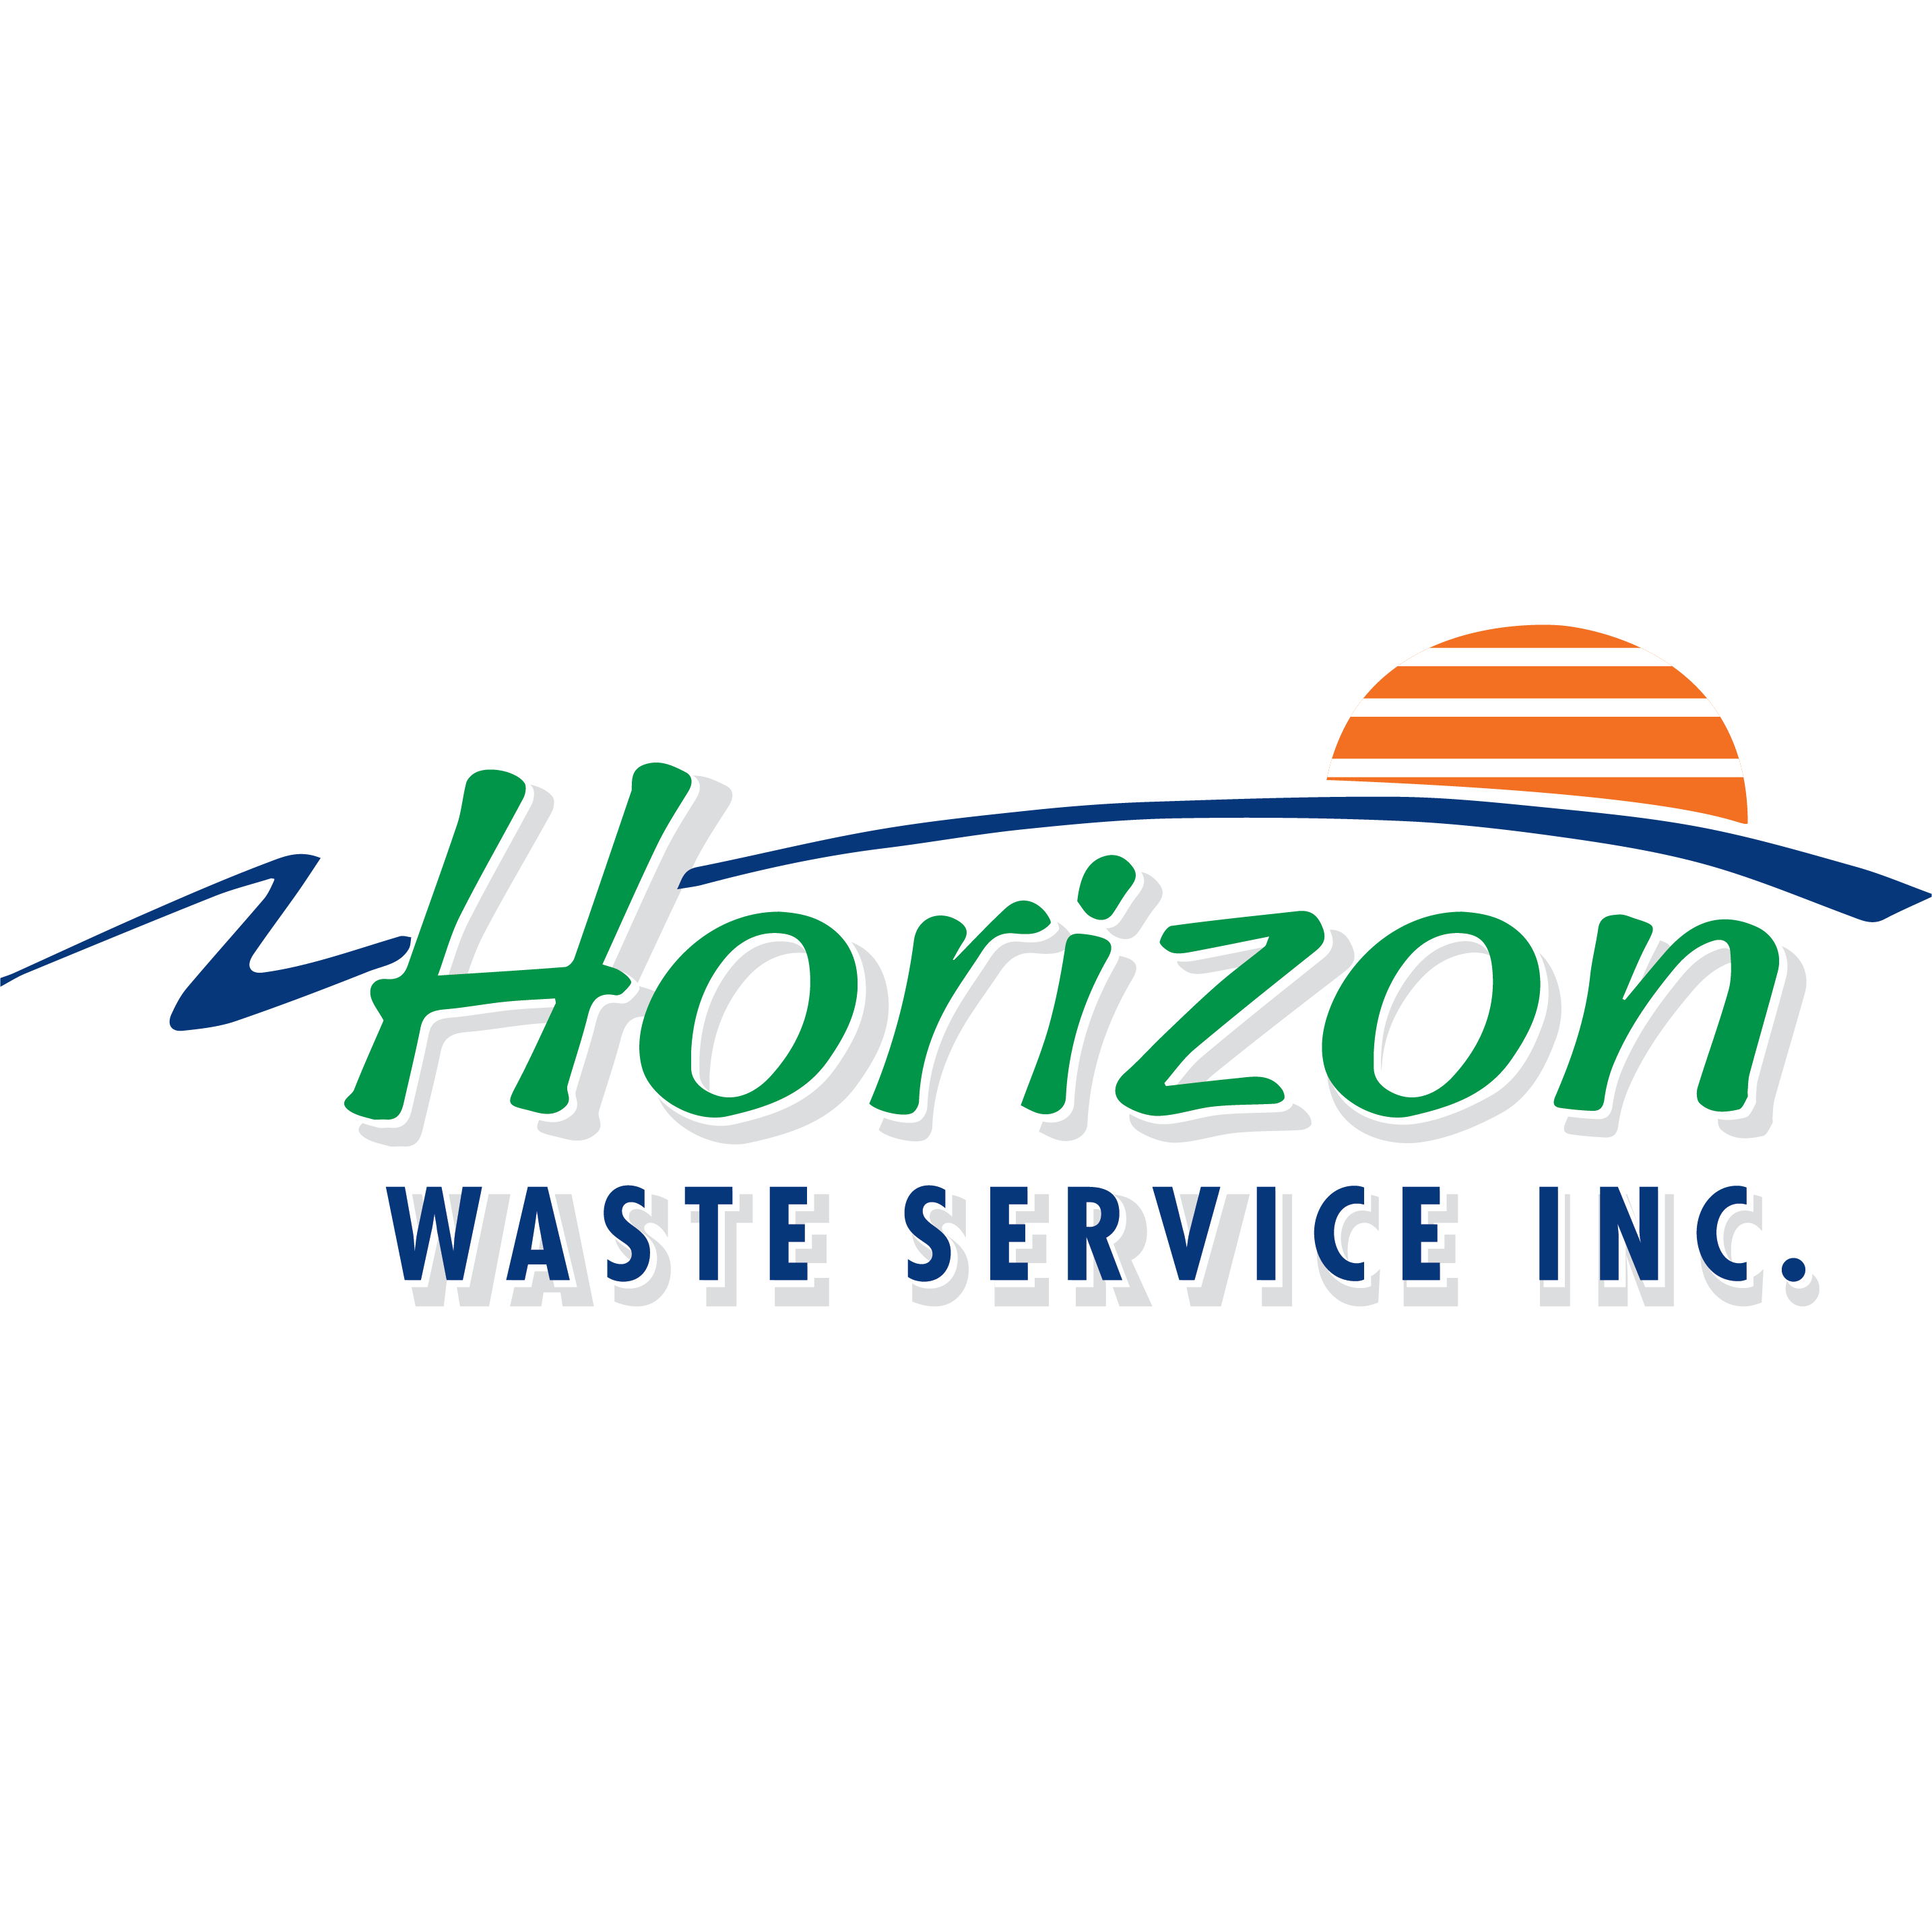 Horizon Waste Service